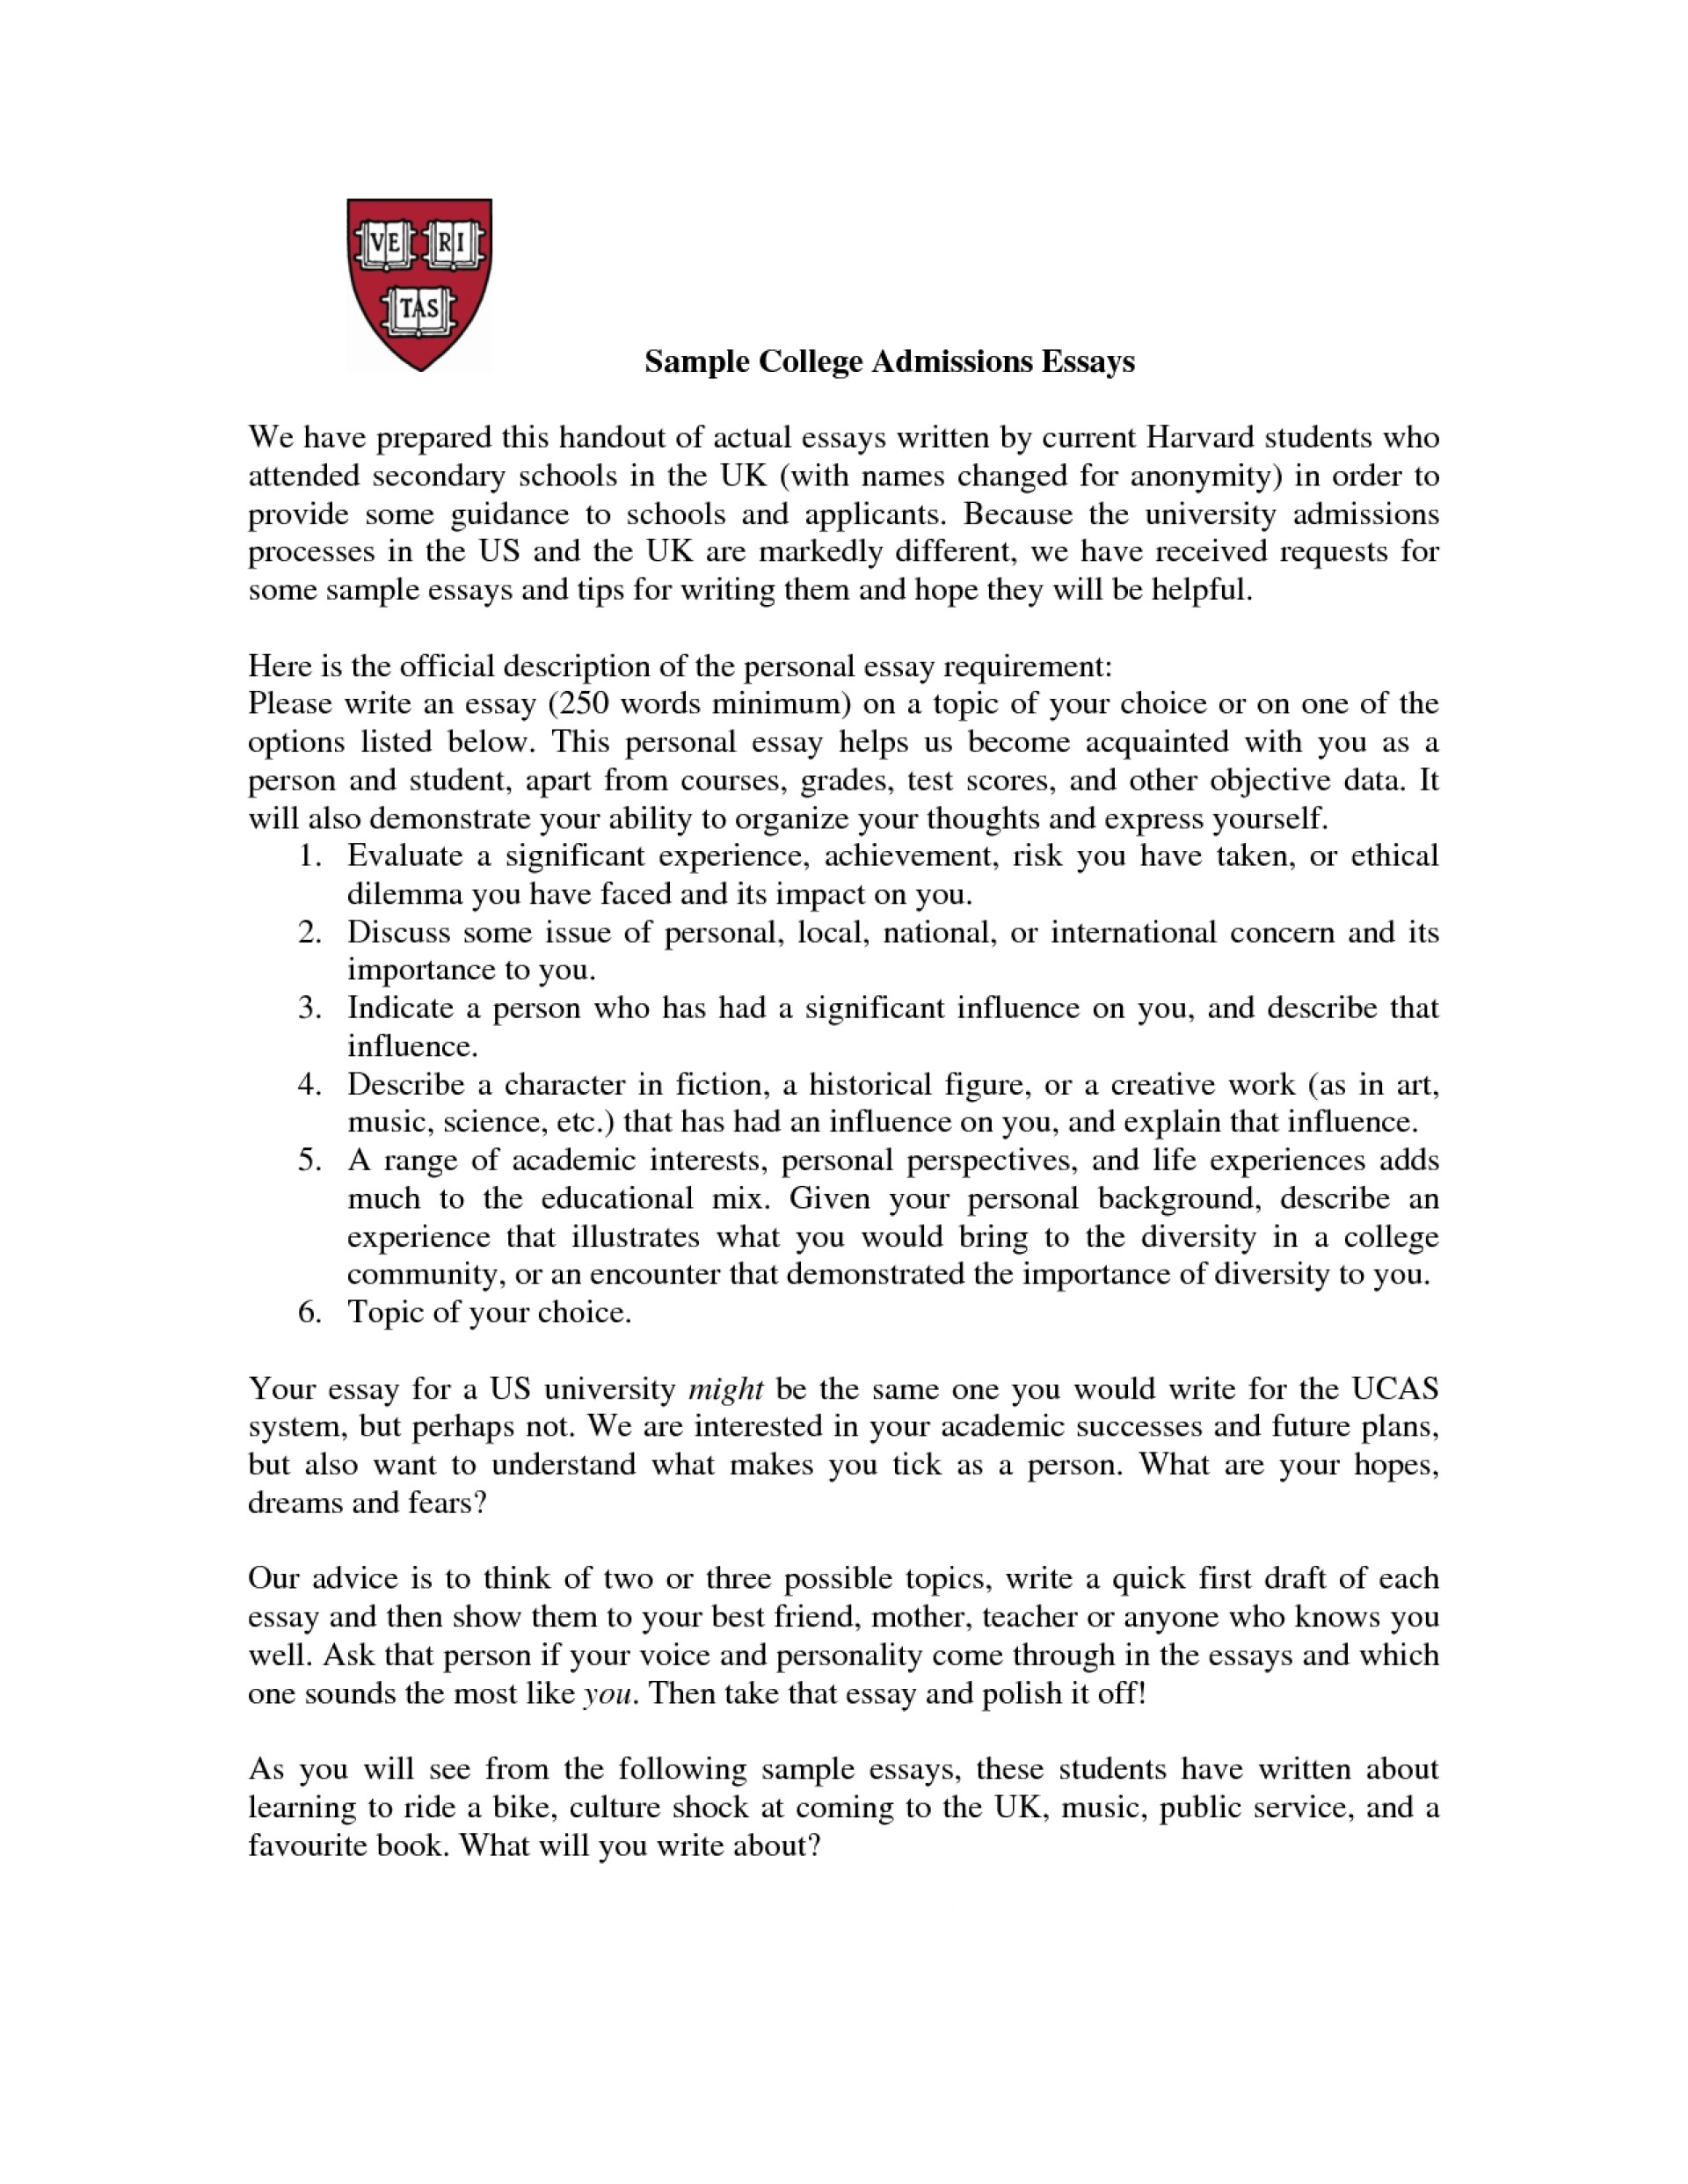 003 Iafr4c5bwr Essay Example Harvard Essays That Staggering Worked University Common App Business School 1920